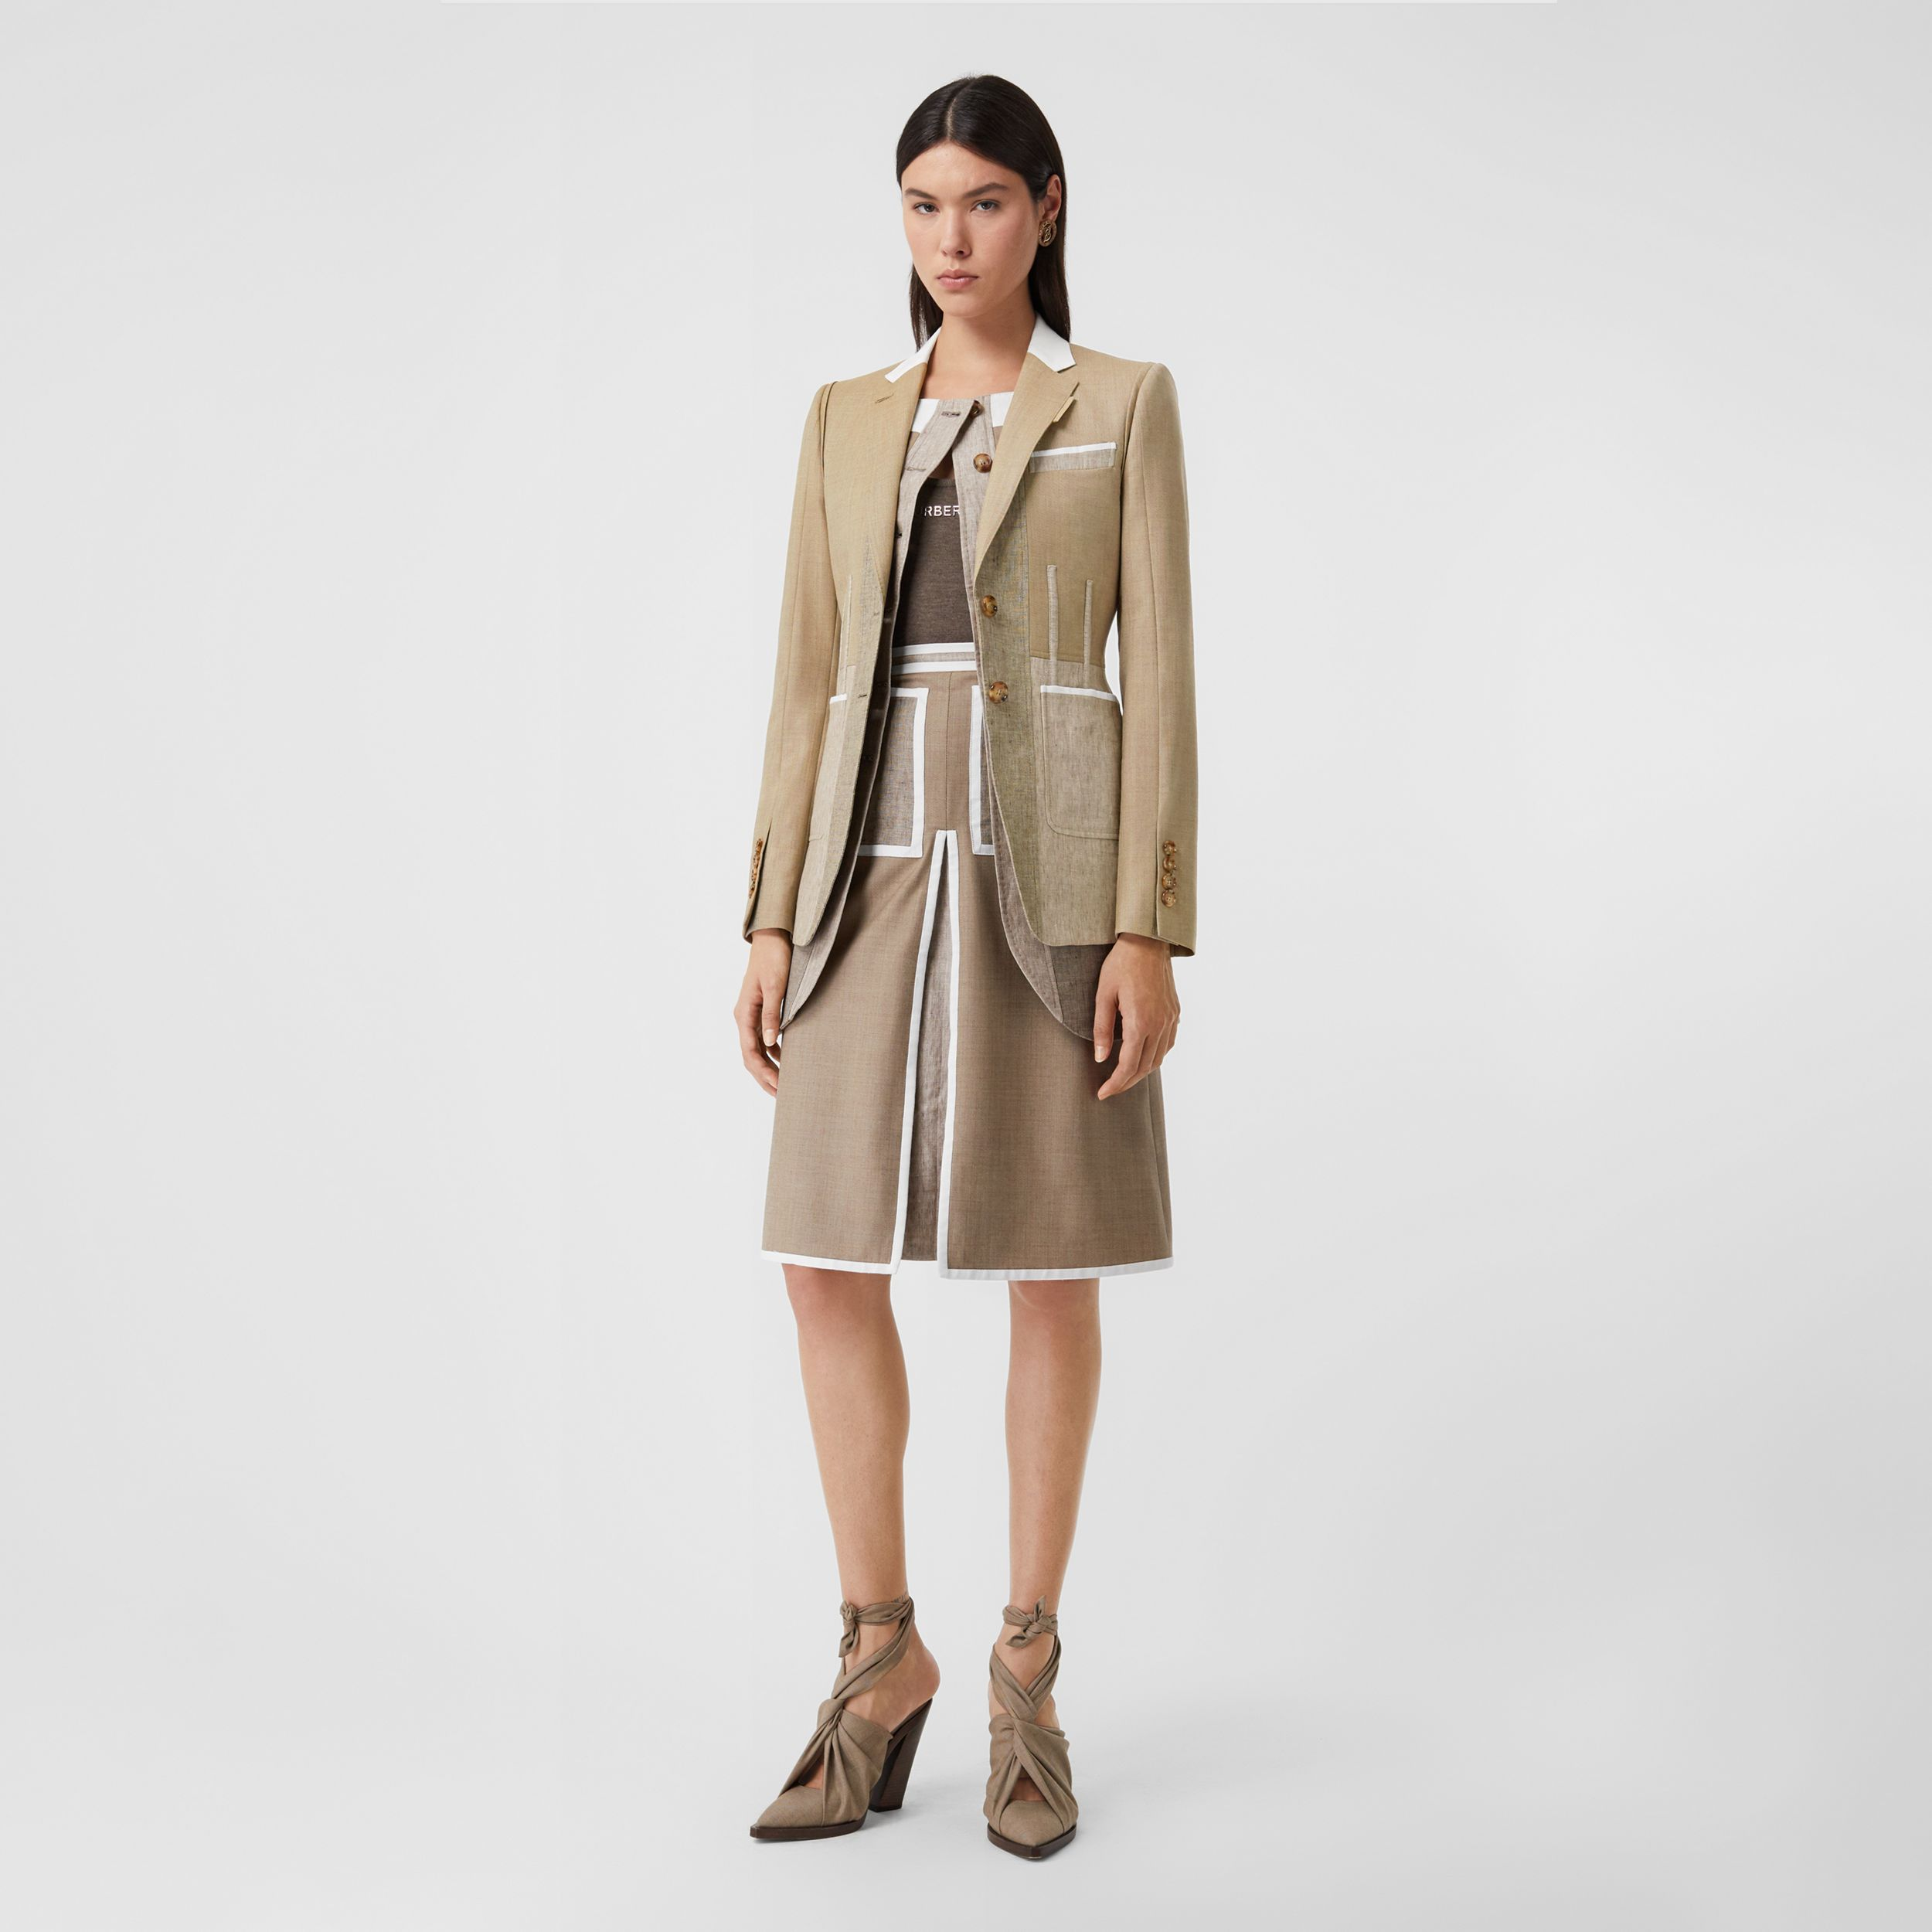 Wool Cashmere and Linen Waistcoat in Pecan Melange - Women | Burberry Australia - 1